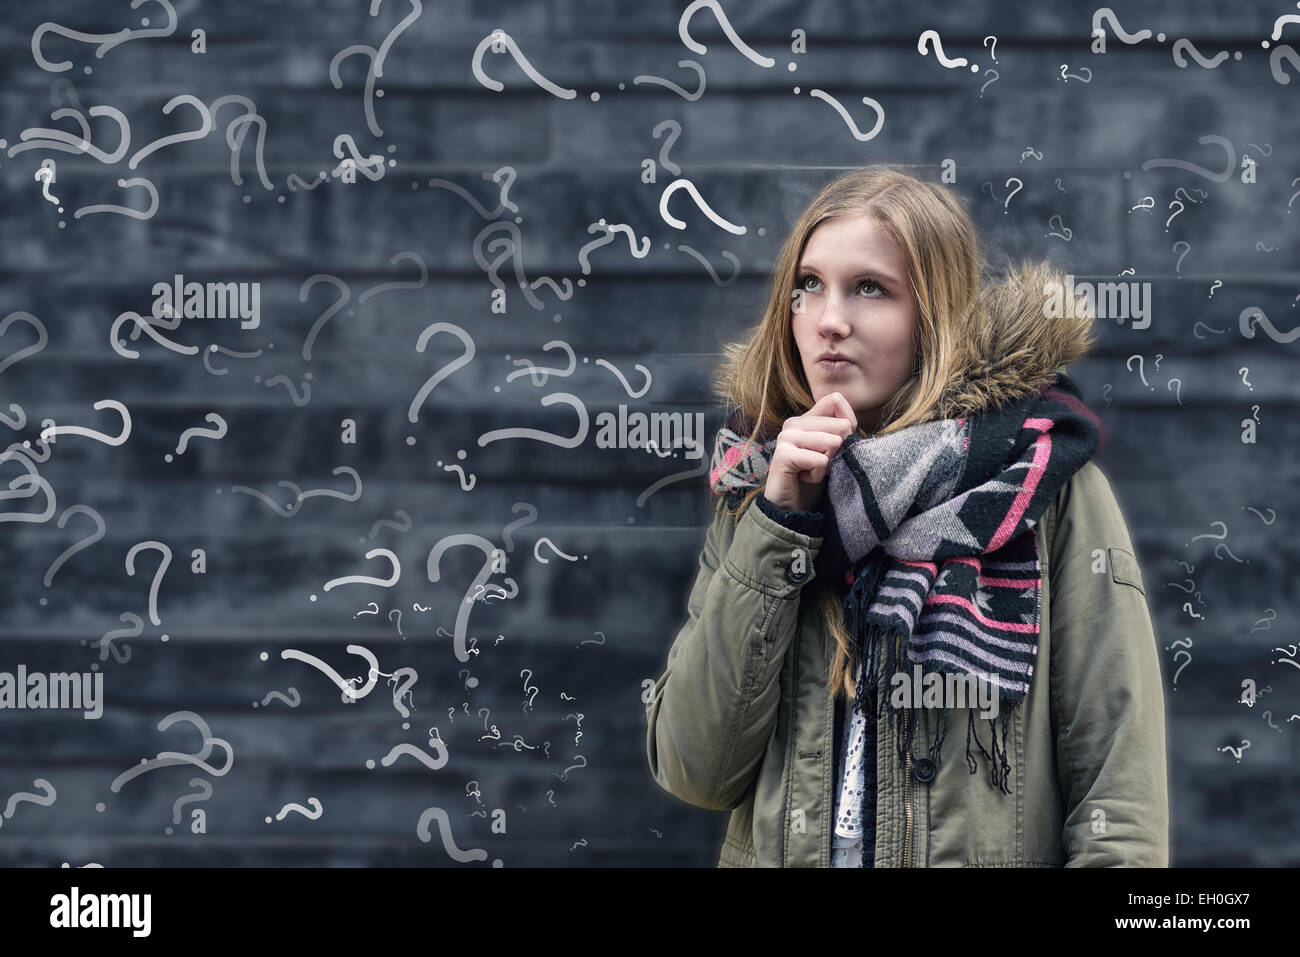 Pretty young female student in class with a problem to solve standing in front of a chalkboard in class covered - Stock Image